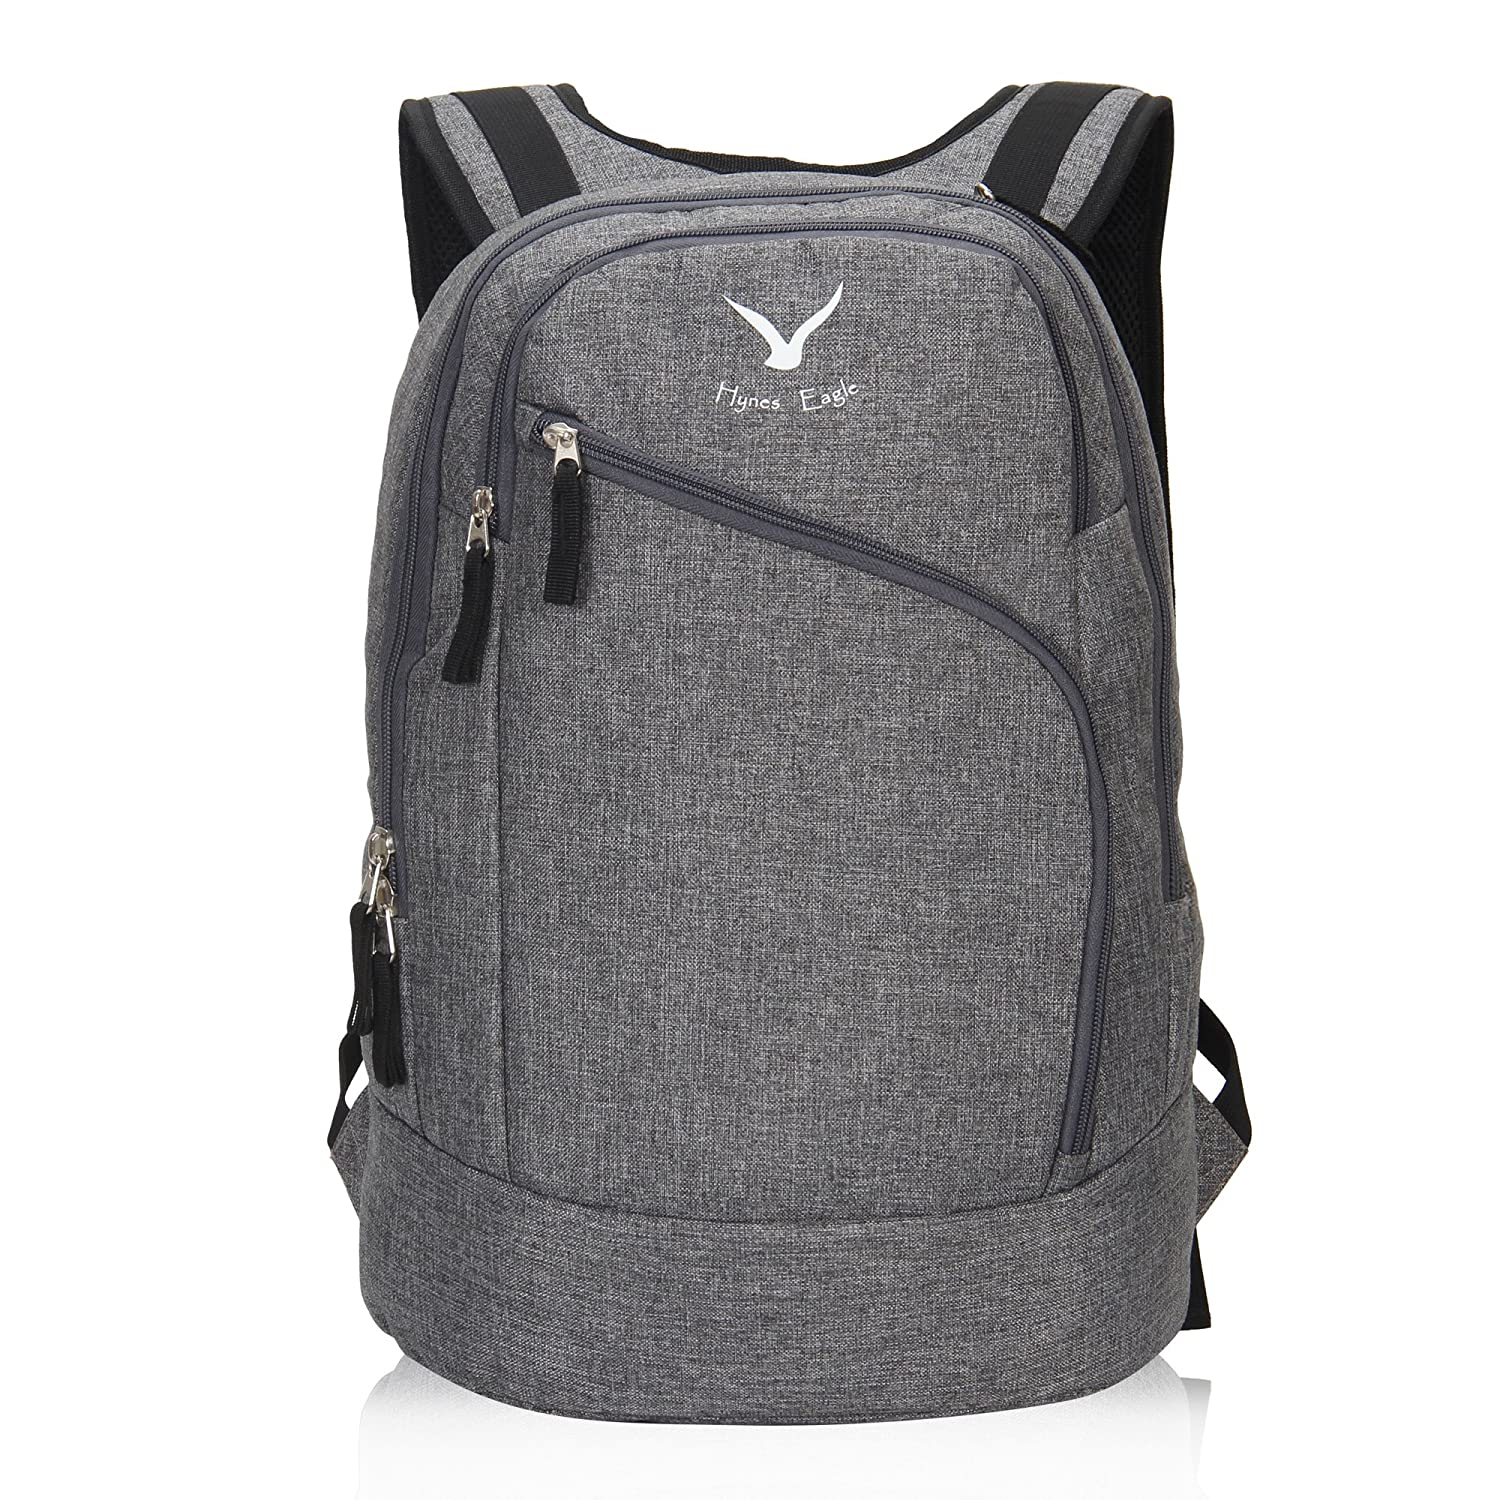 free shipping Travel Carry on Backpack Daypack Bag College School Laptop Backpack Fits 15.6 Inch for Women Men